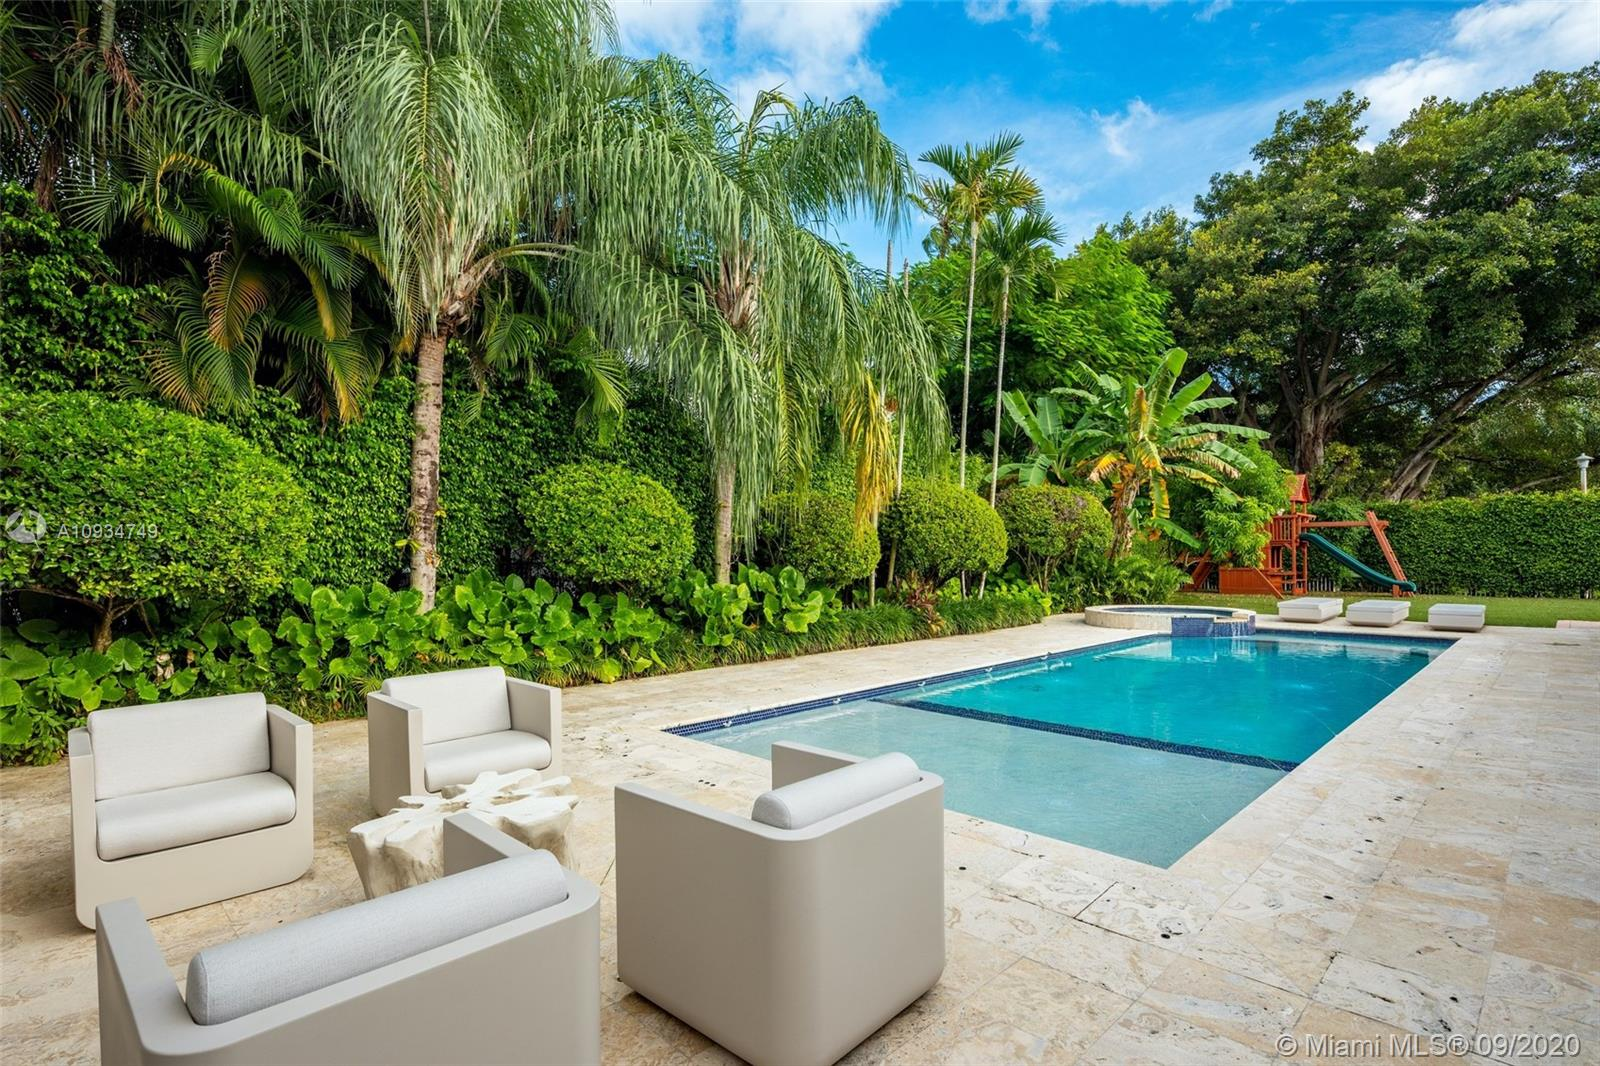 Enjoy living in prestigious gated Bay Point, one of the most exclusive gated communities in Miami. This well-manicured home sits on a picturesque quiet street. Boasting 7 bedrooms, 8 full bathrooms & 1 half bath, this 6,373 total square foot smart home sits on an expansive 19,951 square foot corner lot. Luxurious features in this renovated contemporary home include a spacious open layout with natural light pouring in, modern gourmet kitchen with Wolf and Miele appliances, a large principal suite with a sitting area & dual sinks and walk-in closets, maids quarters & brand new addition to the home adding a second story & additional bedrooms. The outdoors are perfect for entertaining with a beautiful pool, bbq area & covered outdoor lounge area made for outdoor living. 24/7 Bay Point security